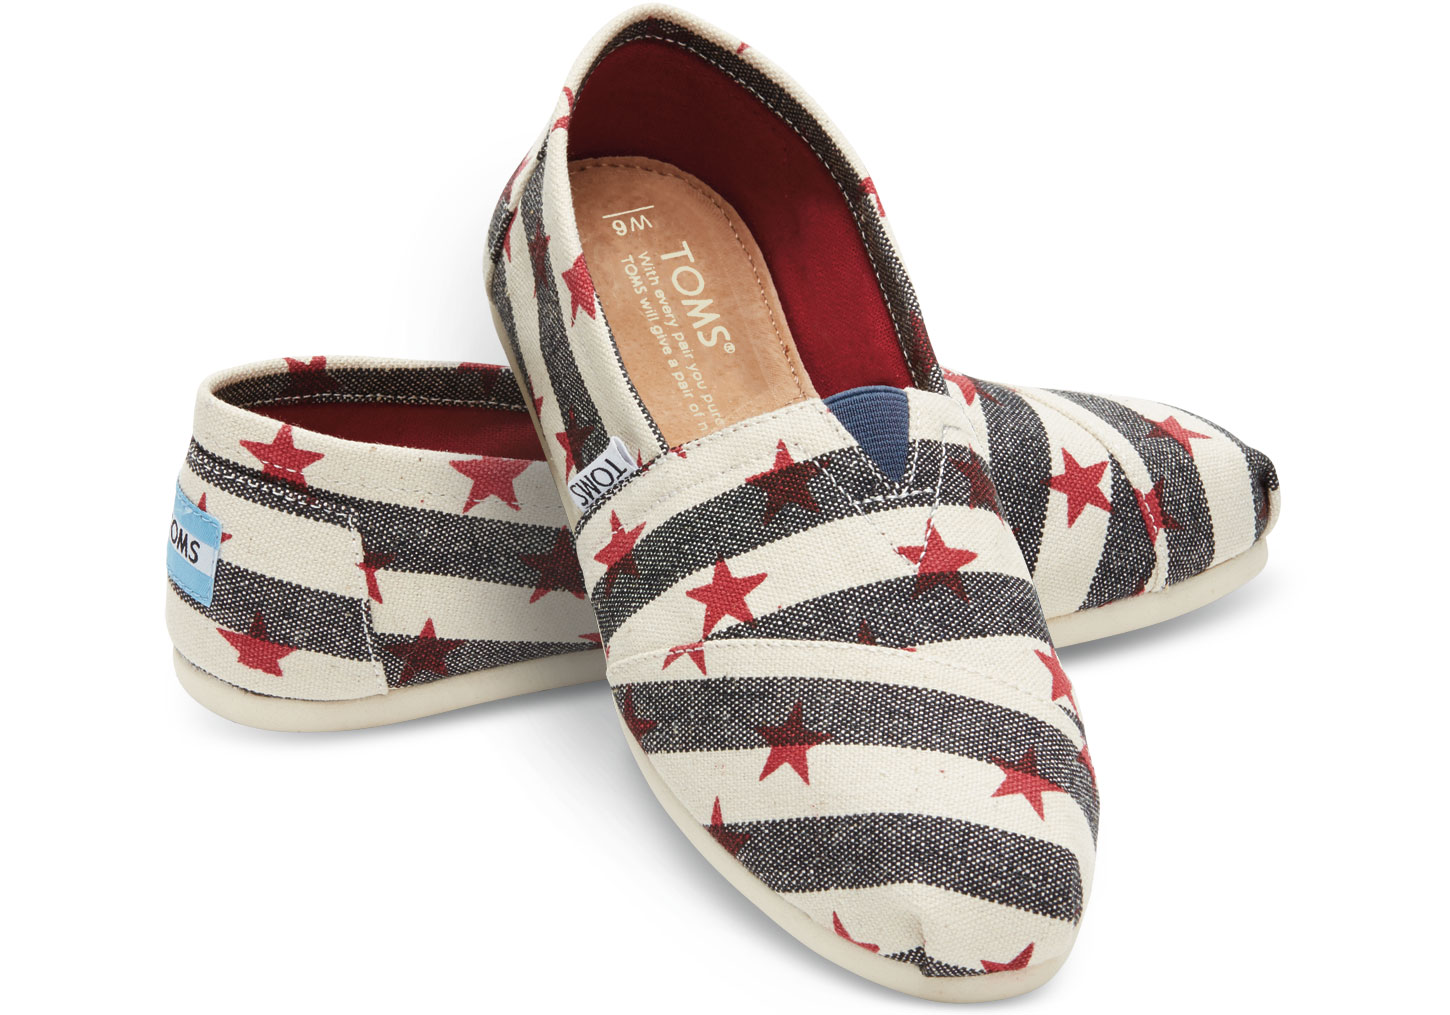 TOMS coupon codes